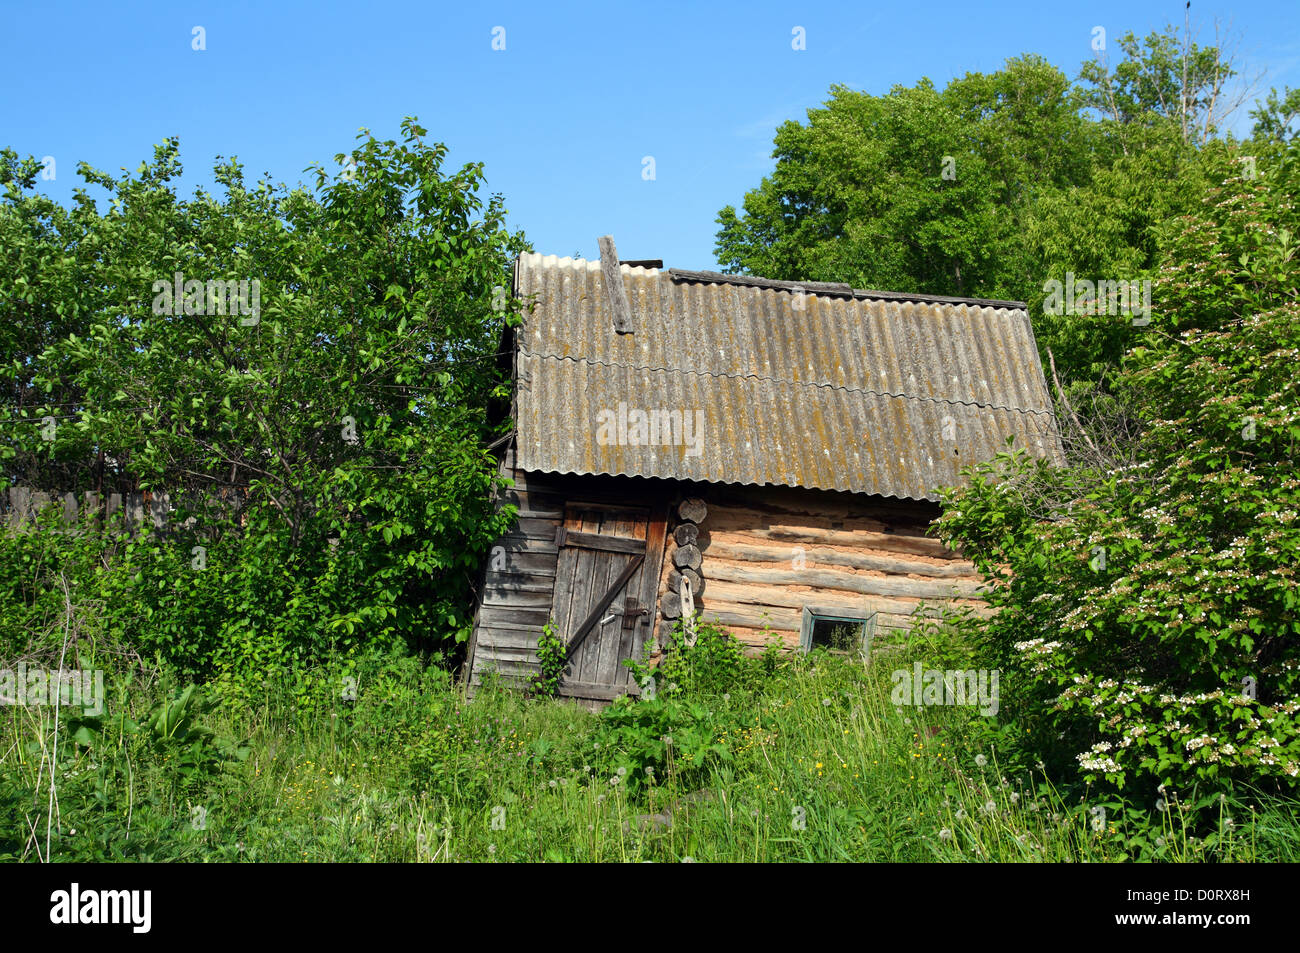 old obsolete bath-house in lush foliage - Stock Image